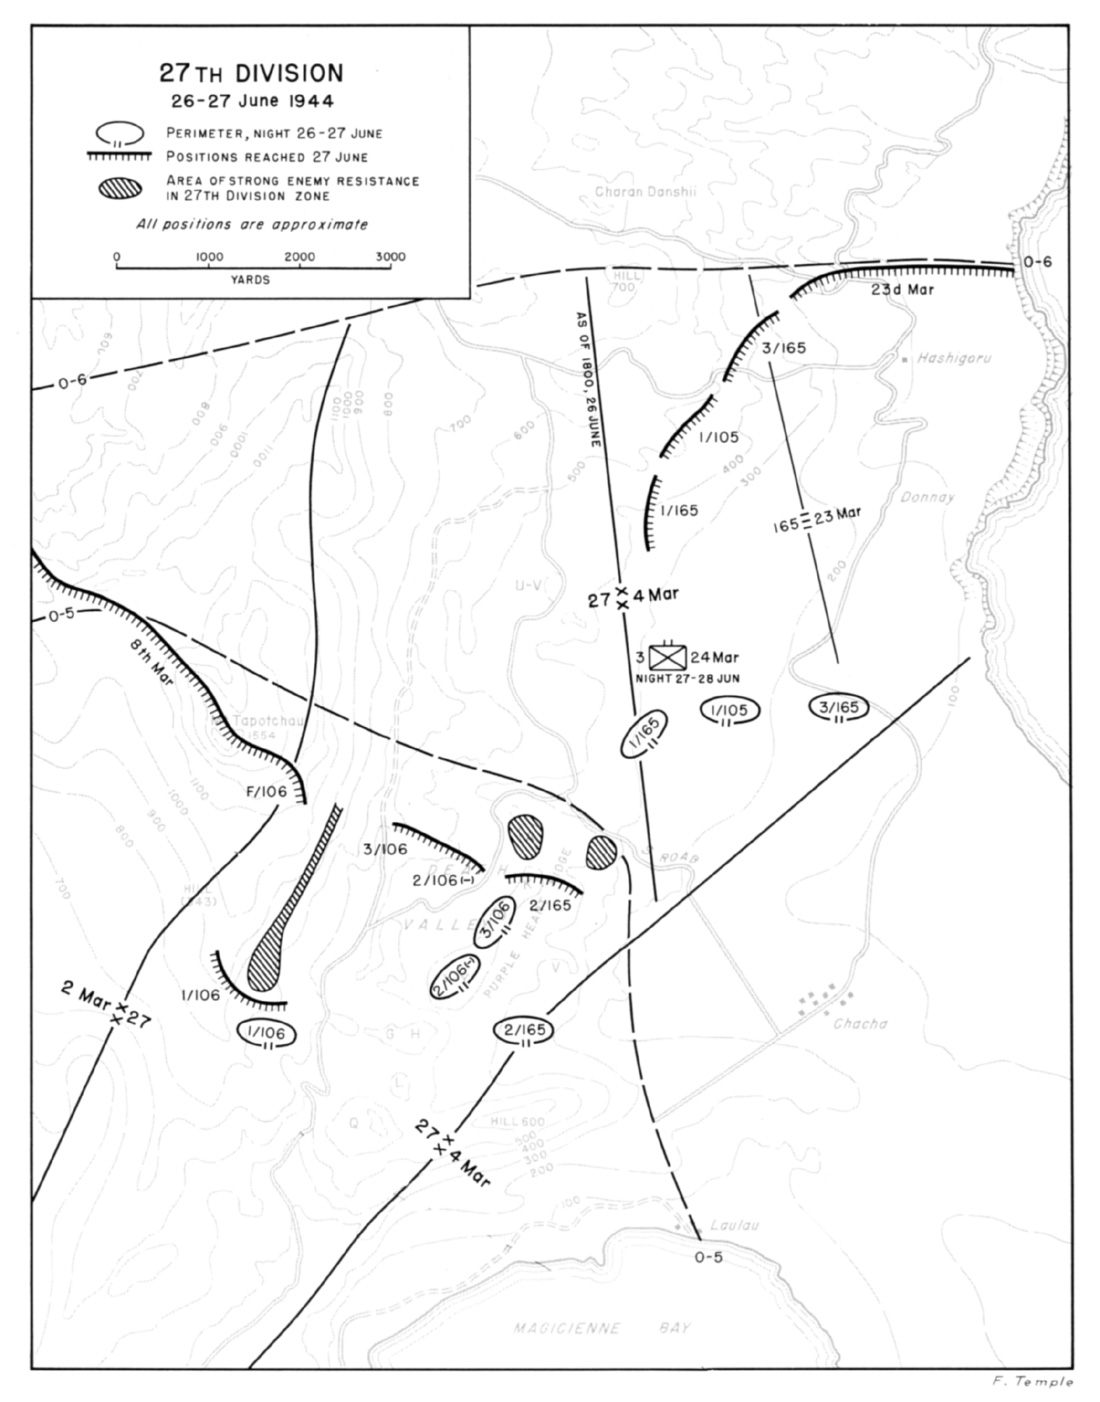 hyperwar us army in wwii c aign in the marianas Timberwolves 104th Infantry Division map 9 27th division 26 27 june 1944